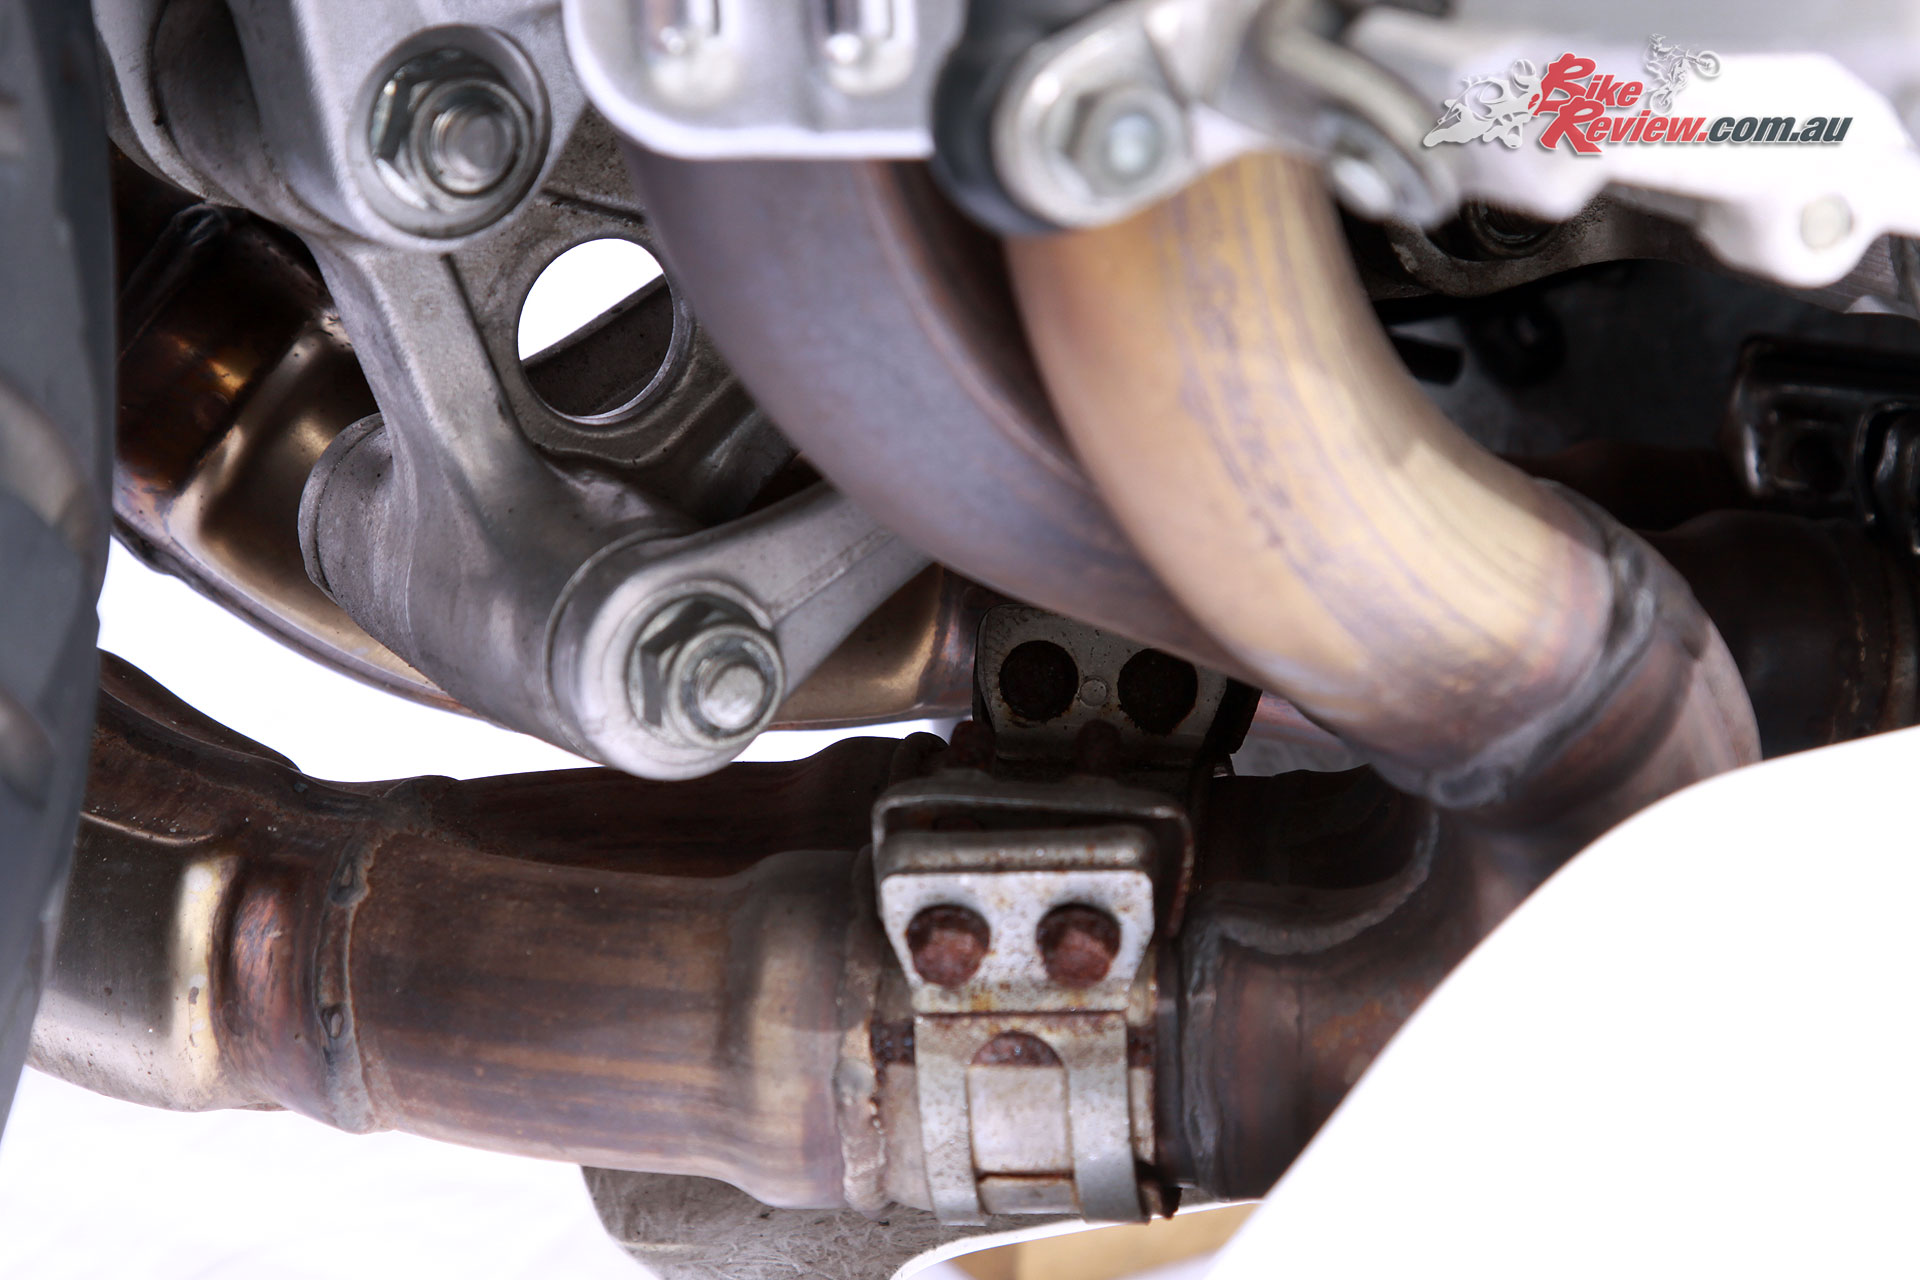 A fully adjustable Showa rear shock with HRC engineered linkages were also featured